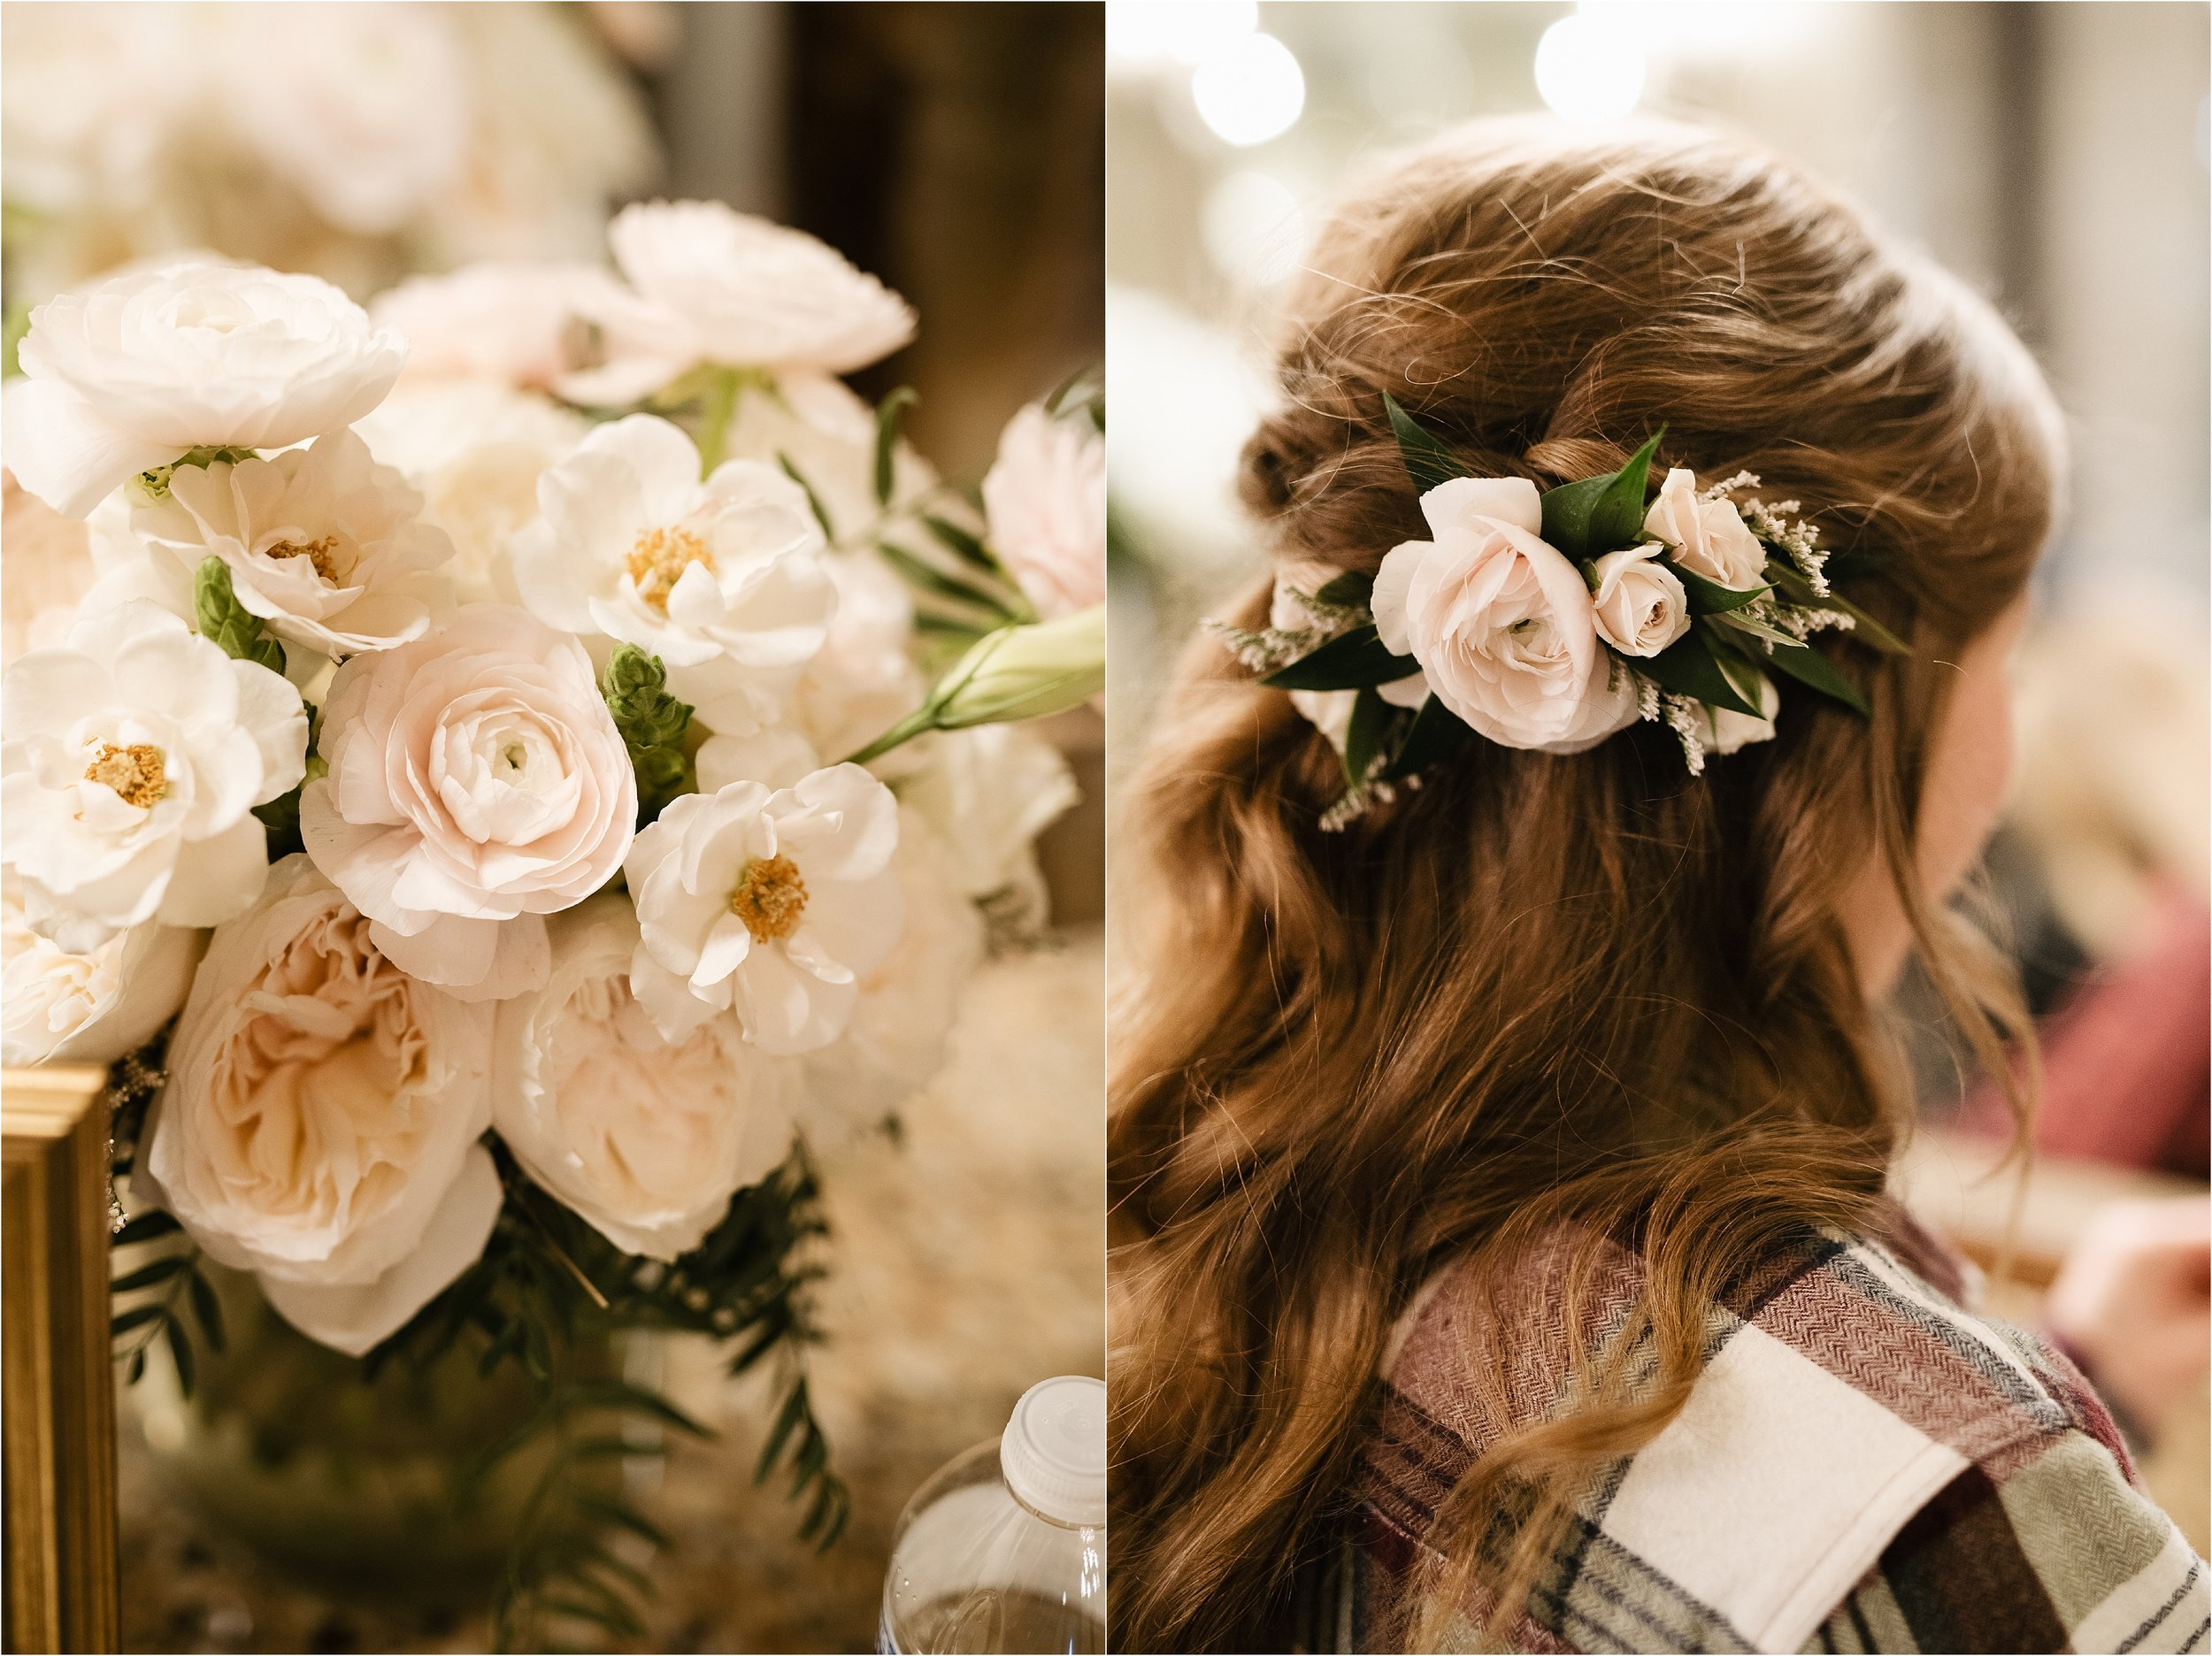 oklahoma wedding photographer hair makeup robes matching outfits bridal party getting ready bridesmaids maid of honor dressing hair bridal bouquet flowers florals